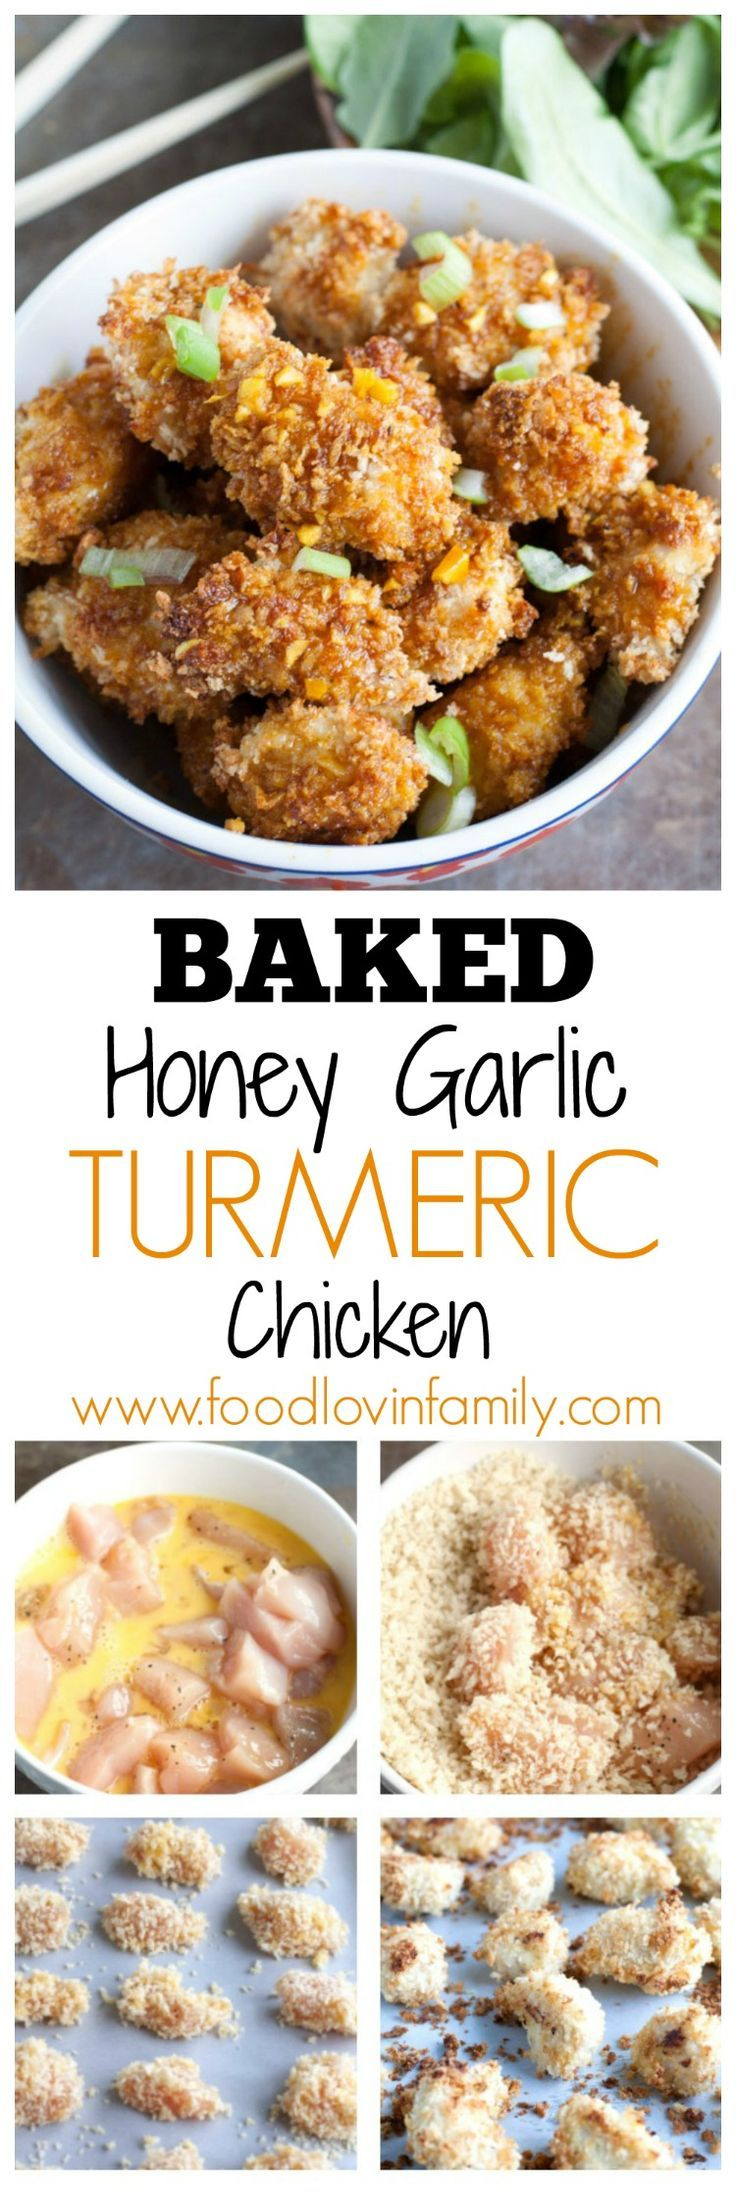 Baked honey garlic turmeric chicken packs a lot of flavor into crispy chicken bites. Great by themselves or served with rice, noodles or vegetables. This recipe is delicious and a must try!! | http://www.foodlovinfamily.com/baked-honey-garlic-turmeric-chicken/